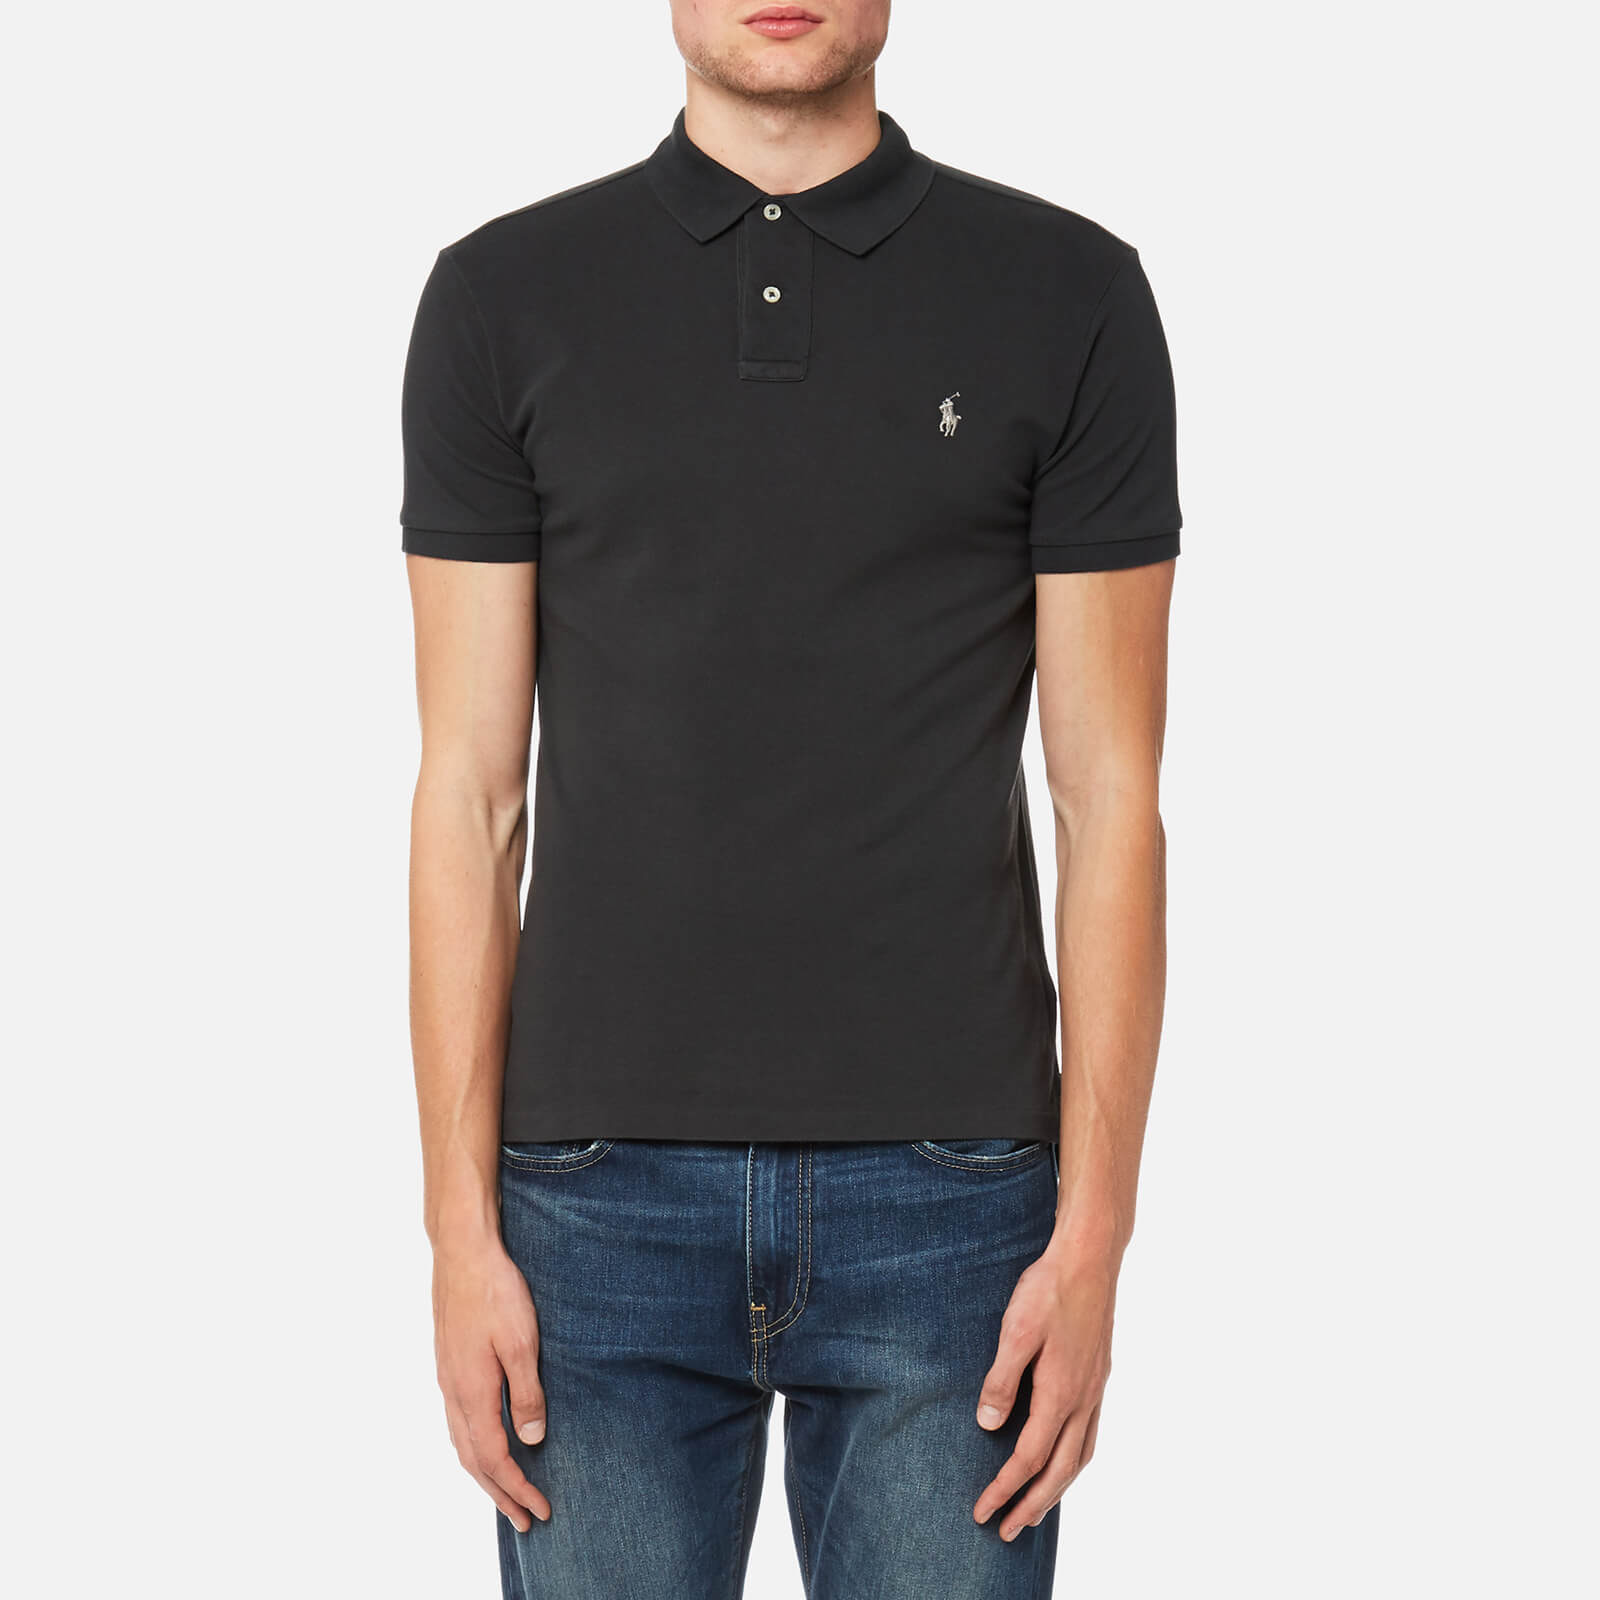 9d821c7f Polo Ralph Lauren Men's Slim Fit Mesh Polo Shirt - Dark Carbon Grey - Free  UK Delivery over £50